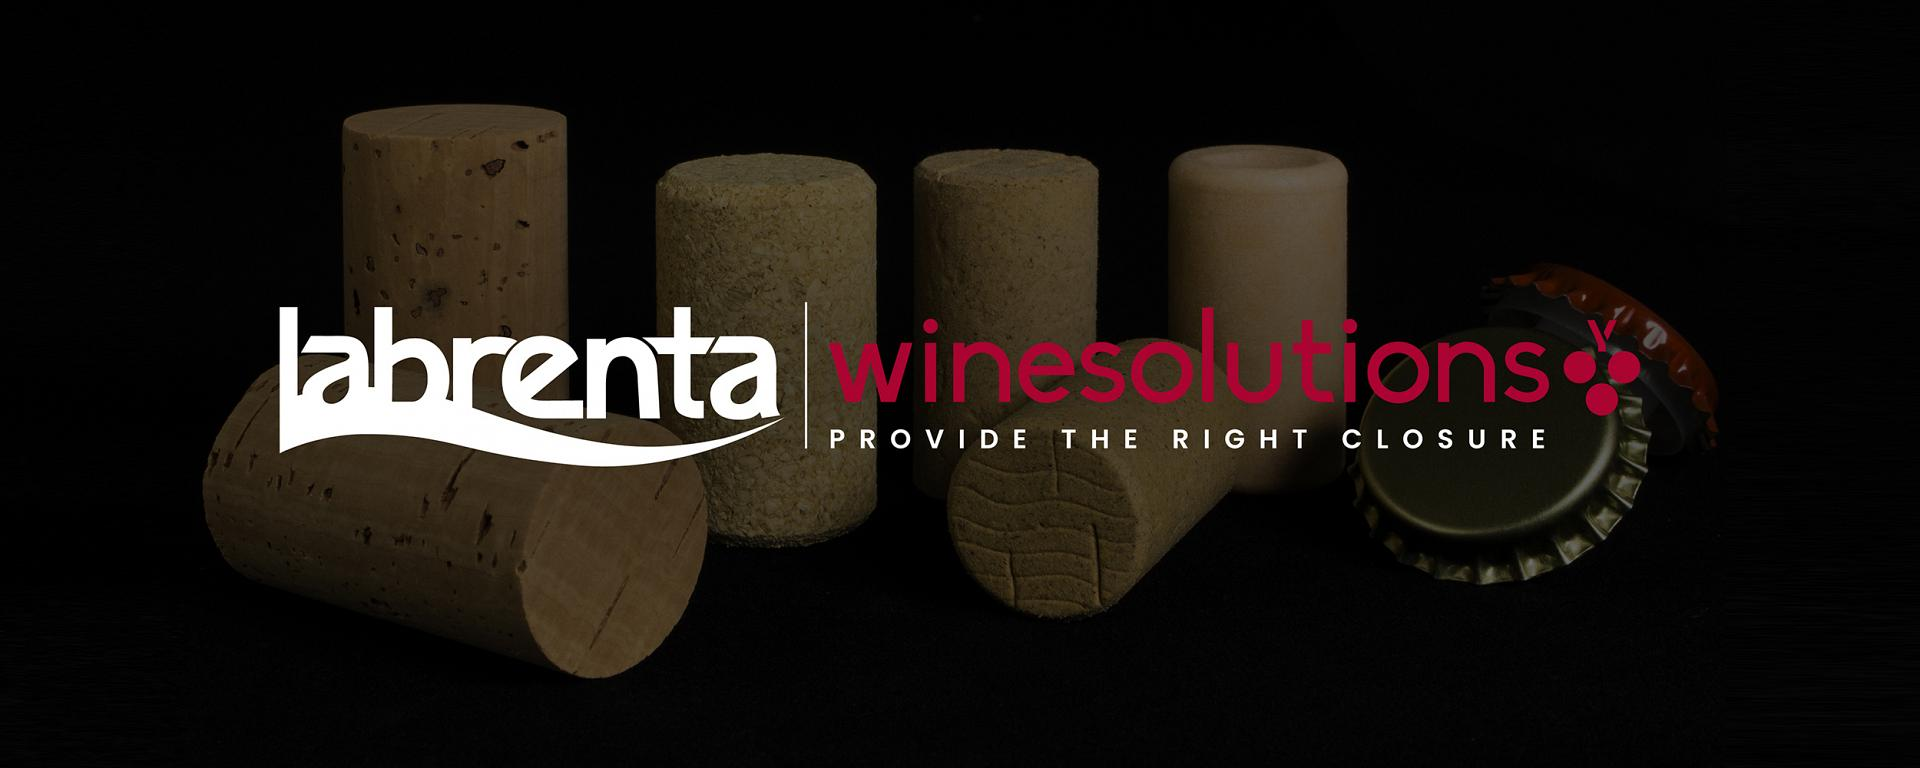 Labrenta Winesolutions services and wine closures